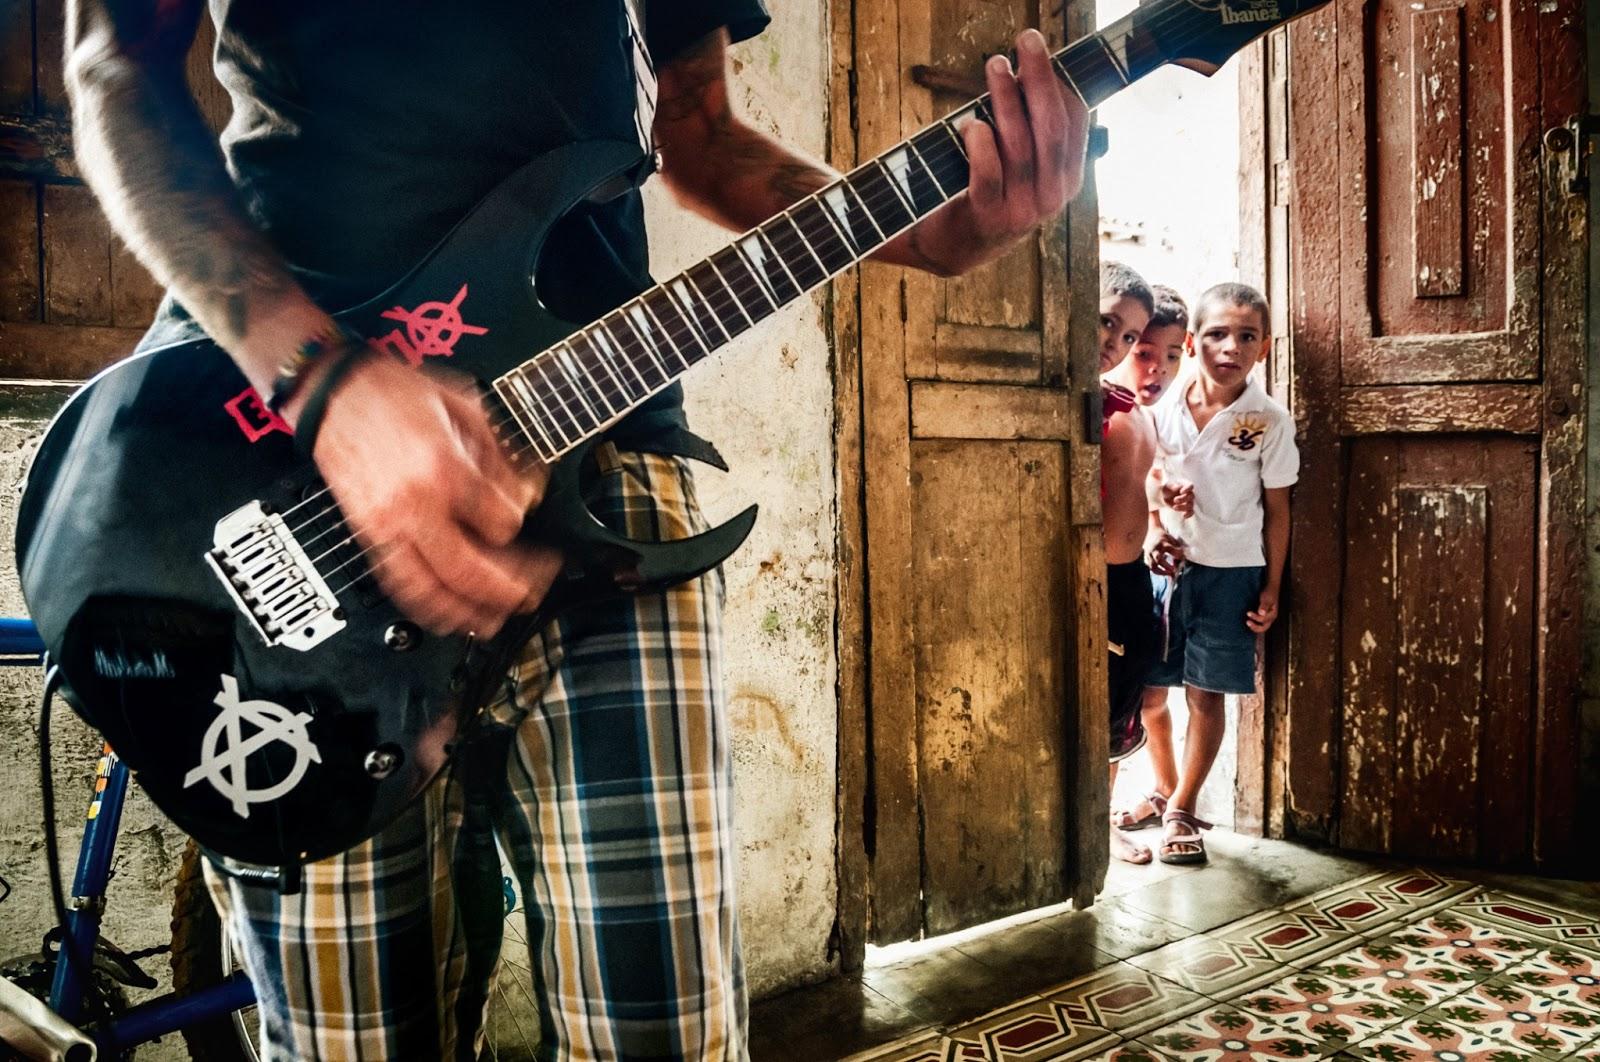 Los Frikis: The Cuban Punk Kids Who Gave Themselves HIV as an Act of Rebellion